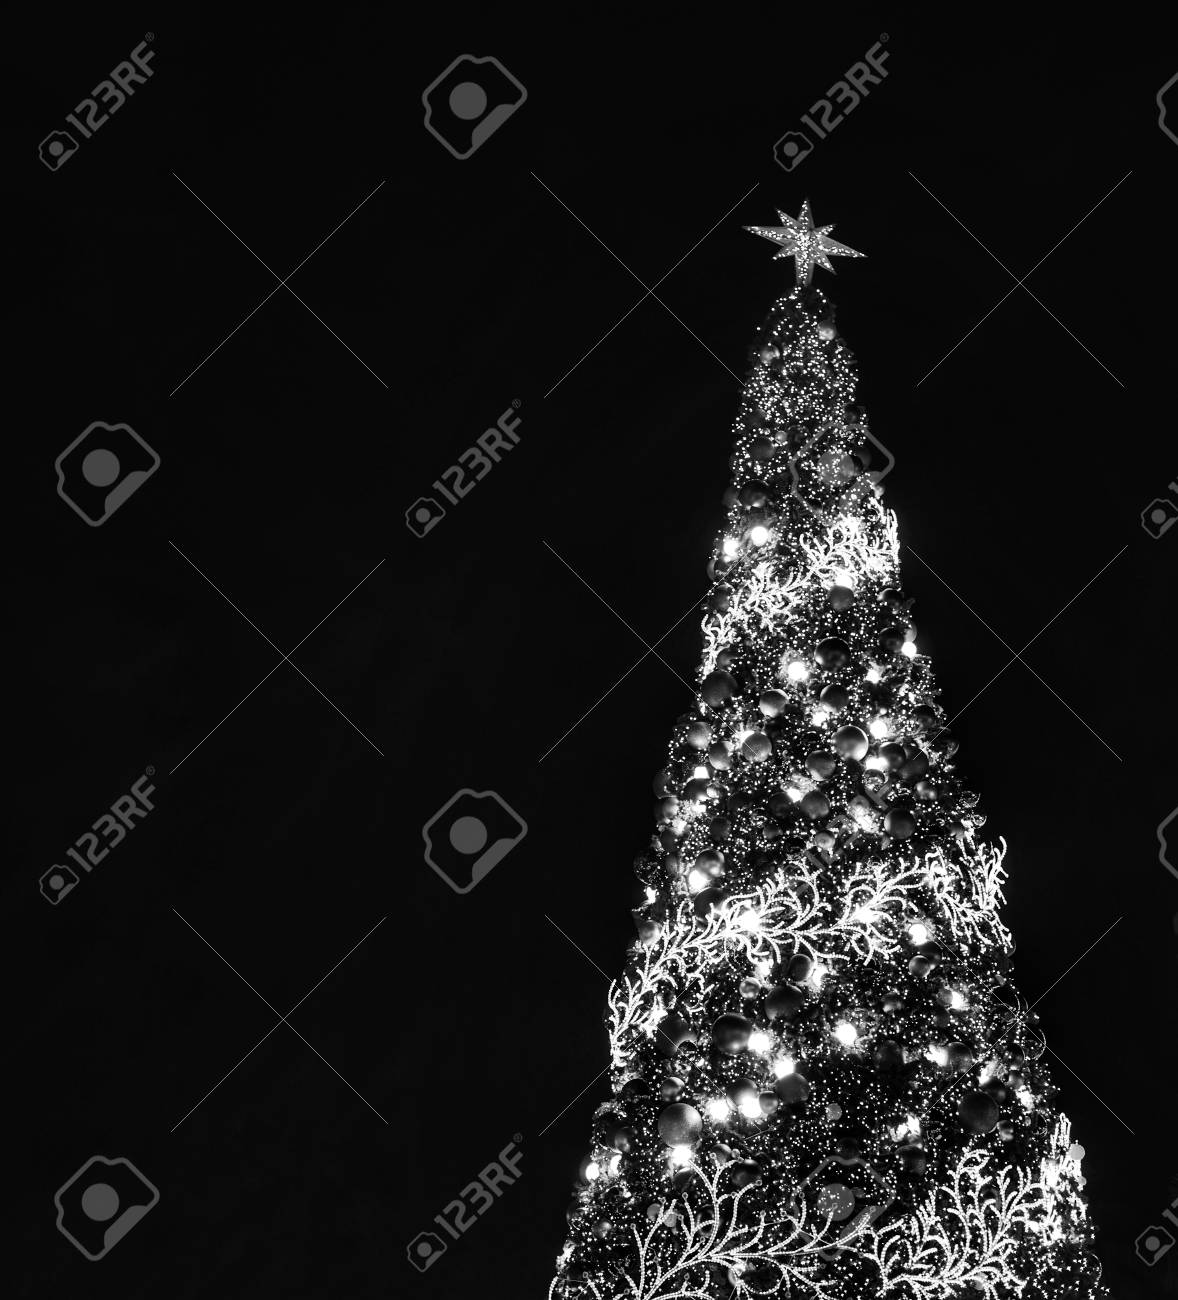 Big Christmas Tree Lighting At Night In Christmas Festival With